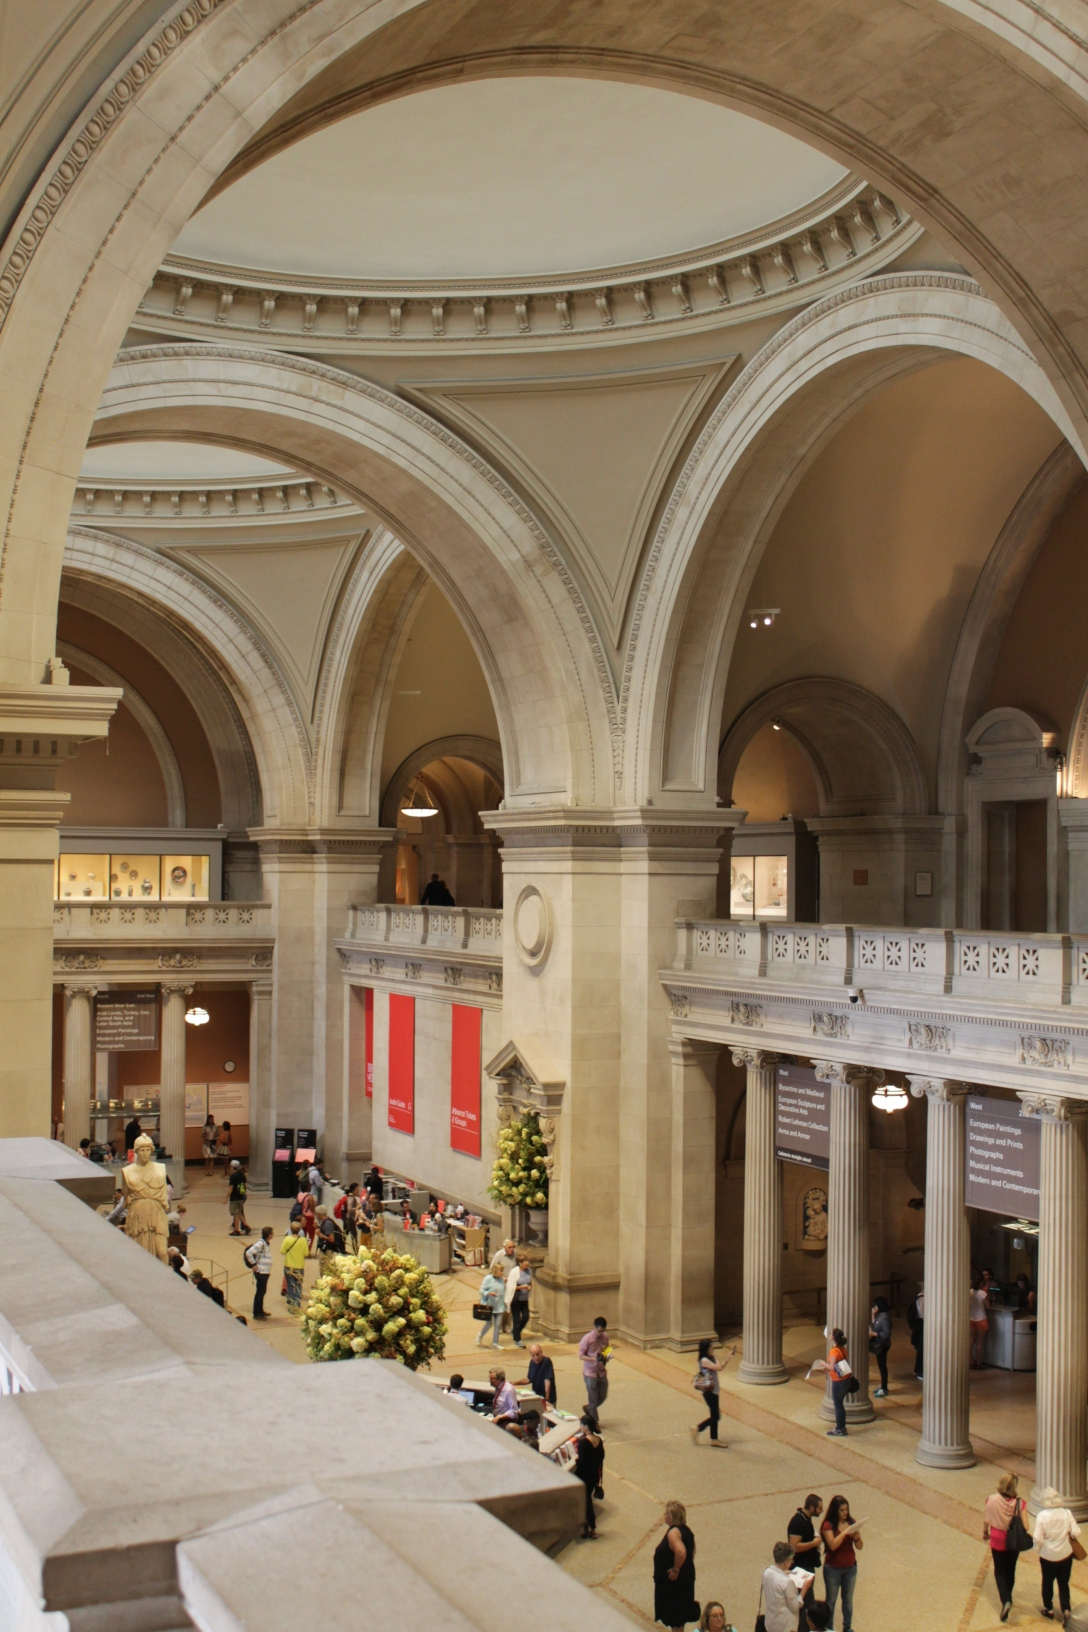 The entrance hall of the Metropolitan Museum of Art, New York City.